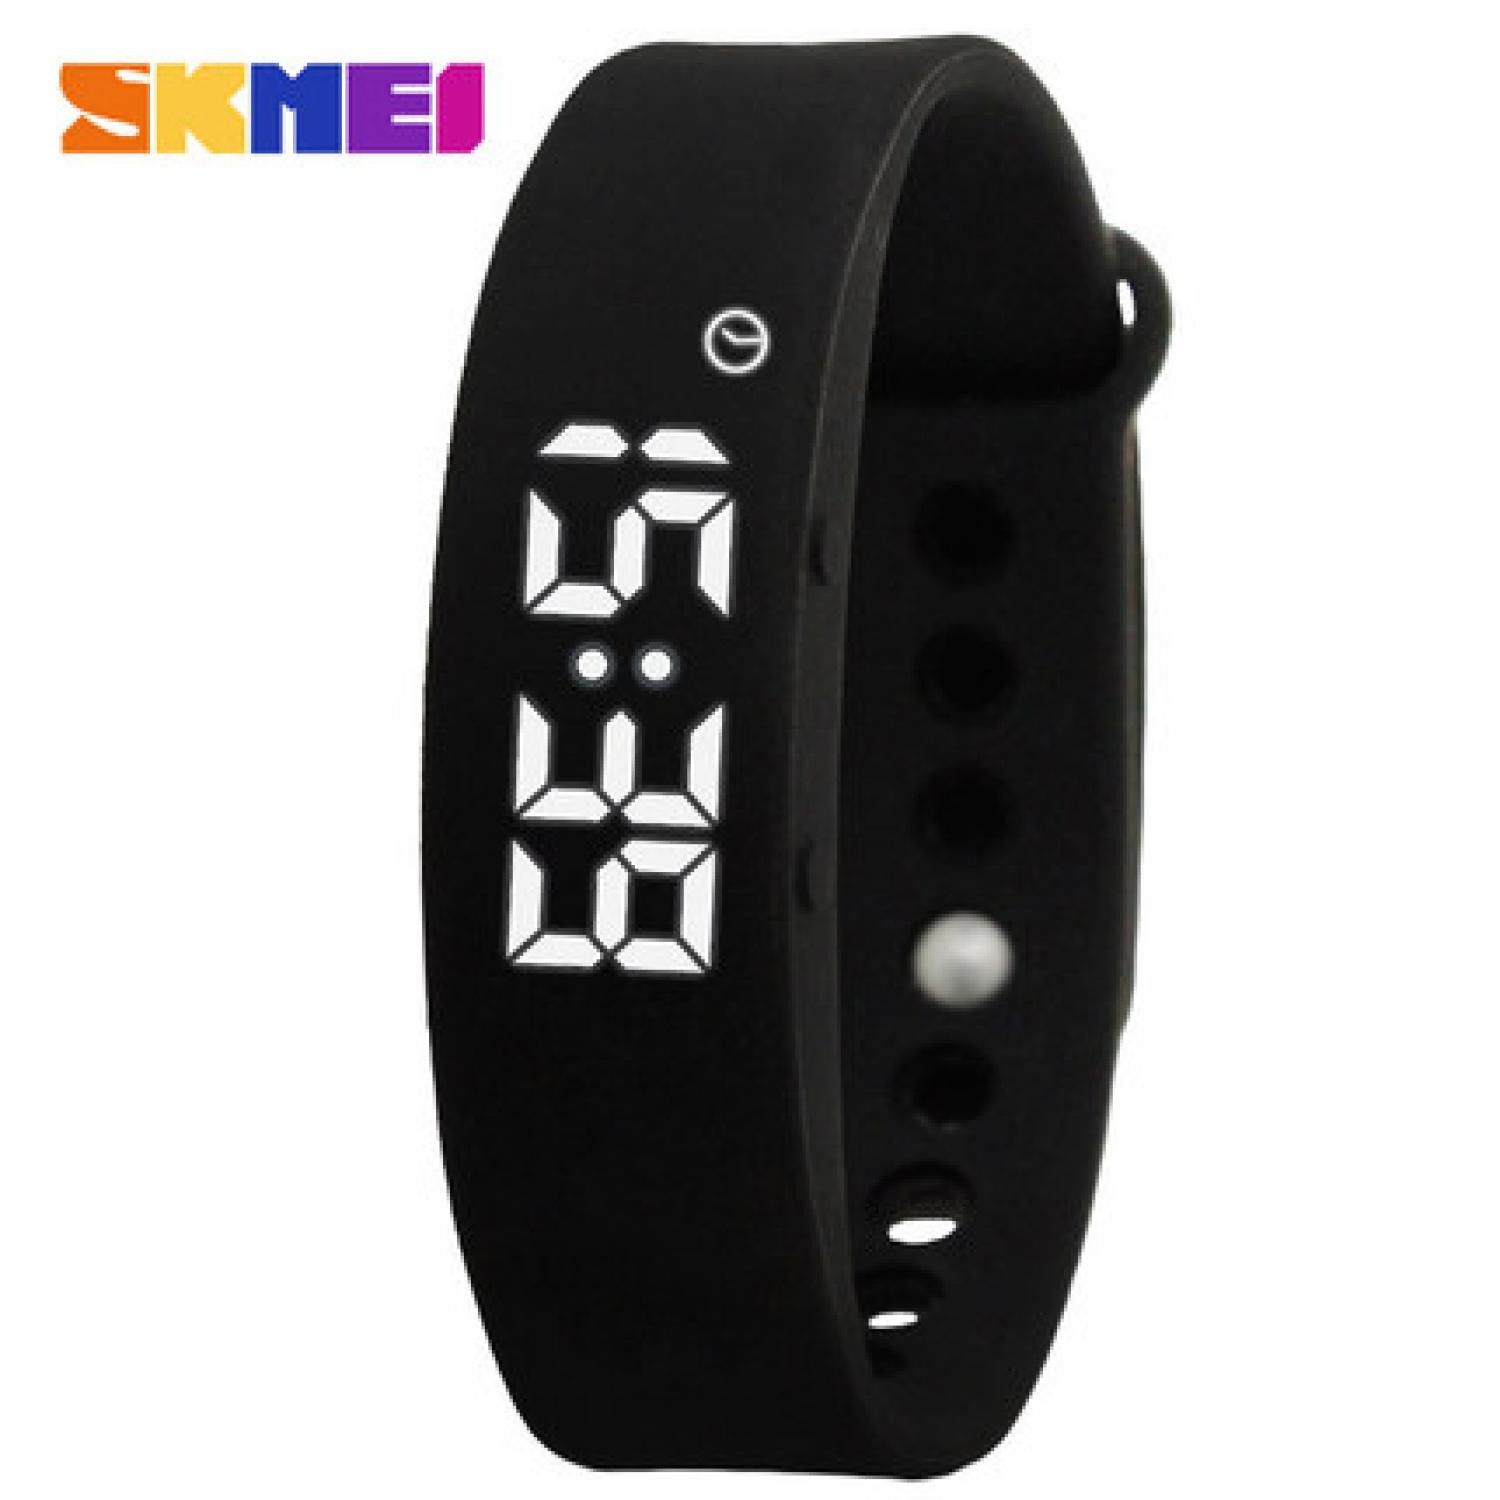 Jam Tangan Pria SKMEI Digital Sport LED Fitness Tracker W05